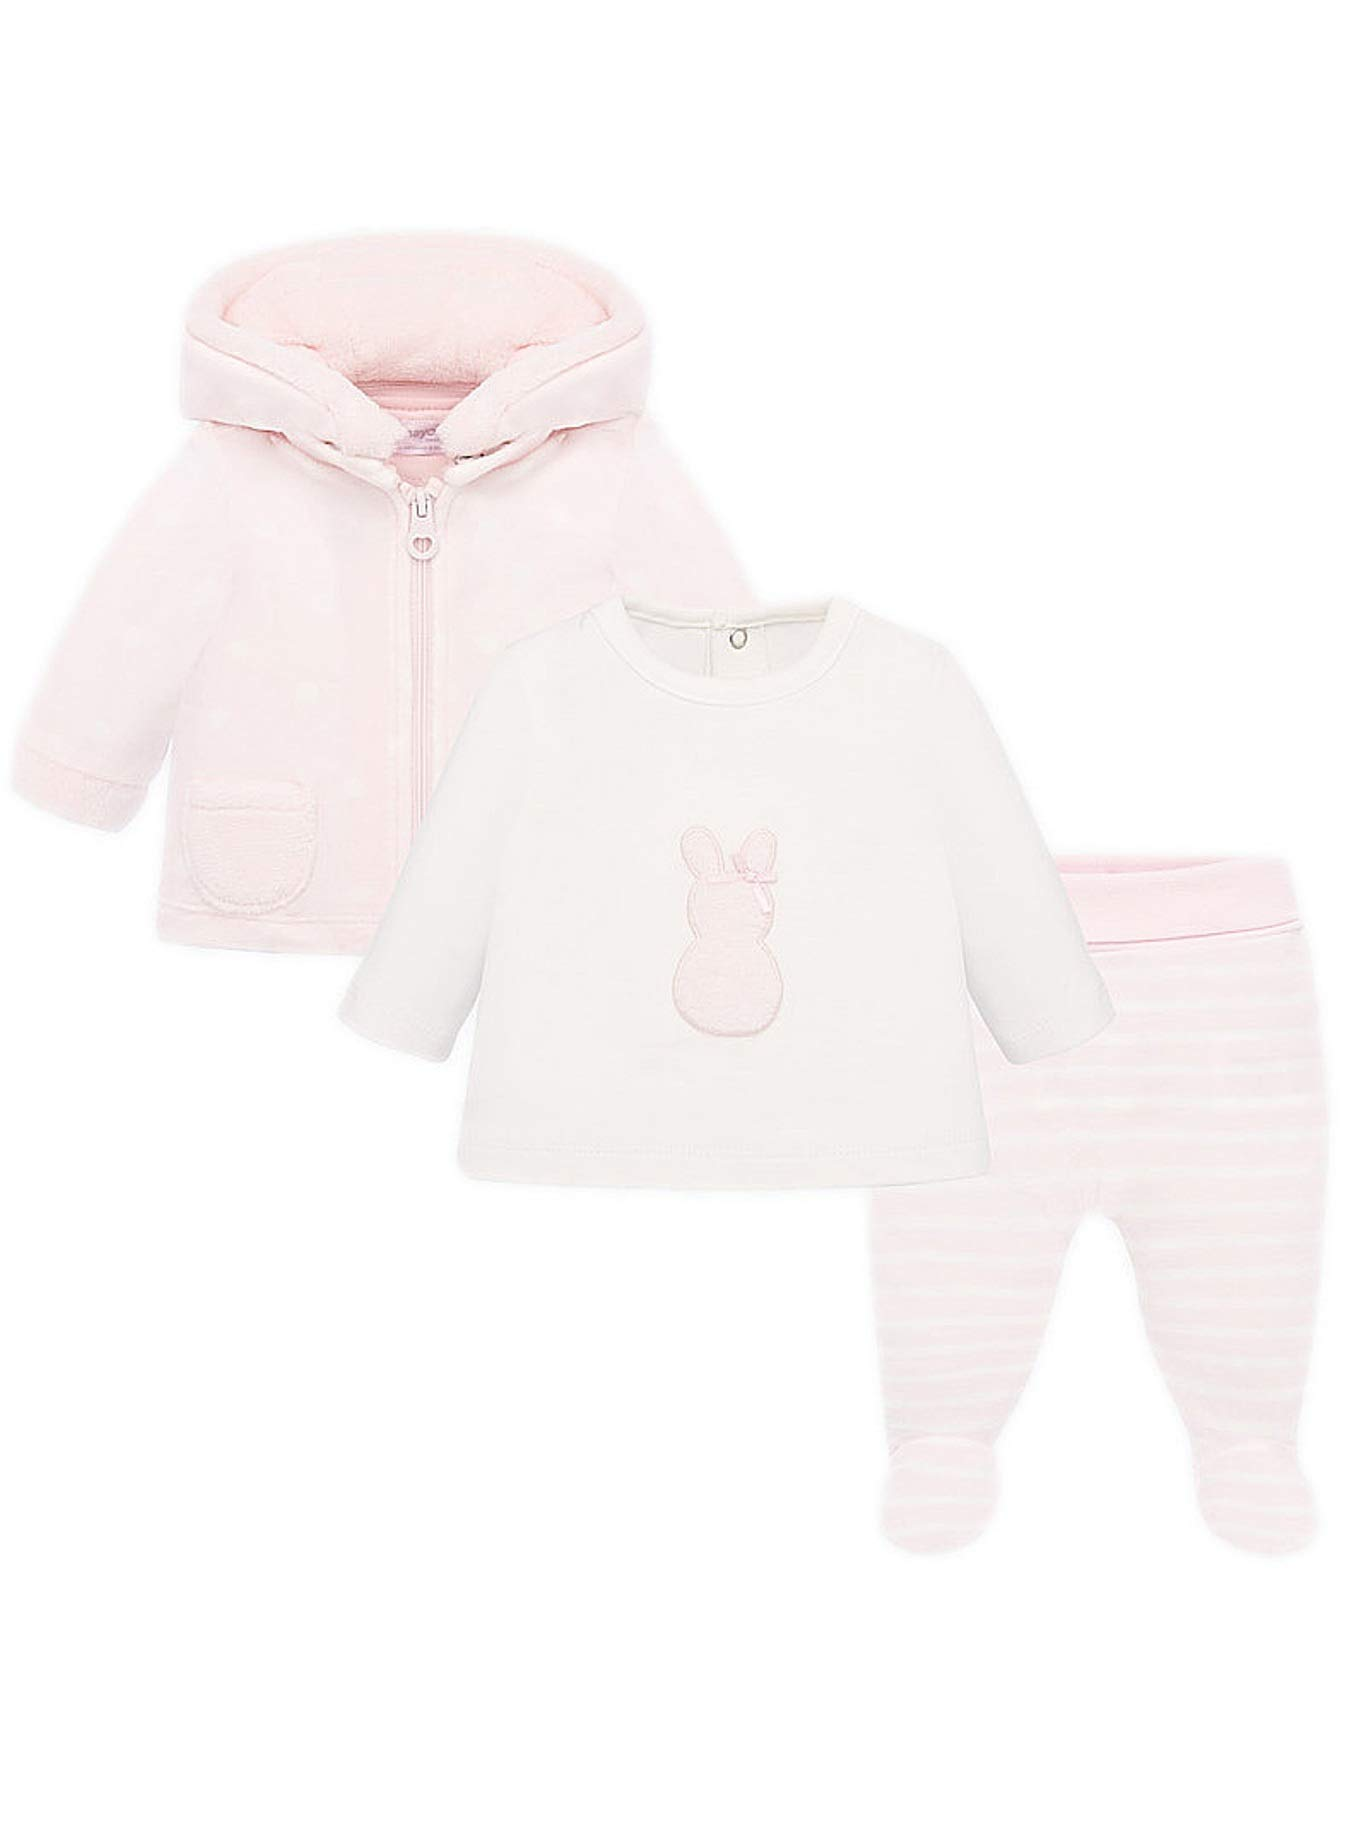 Mayoral 19-02606-016 - Tracksuit for Baby-Girls 2-4 Months Baby Rose by Mayoral